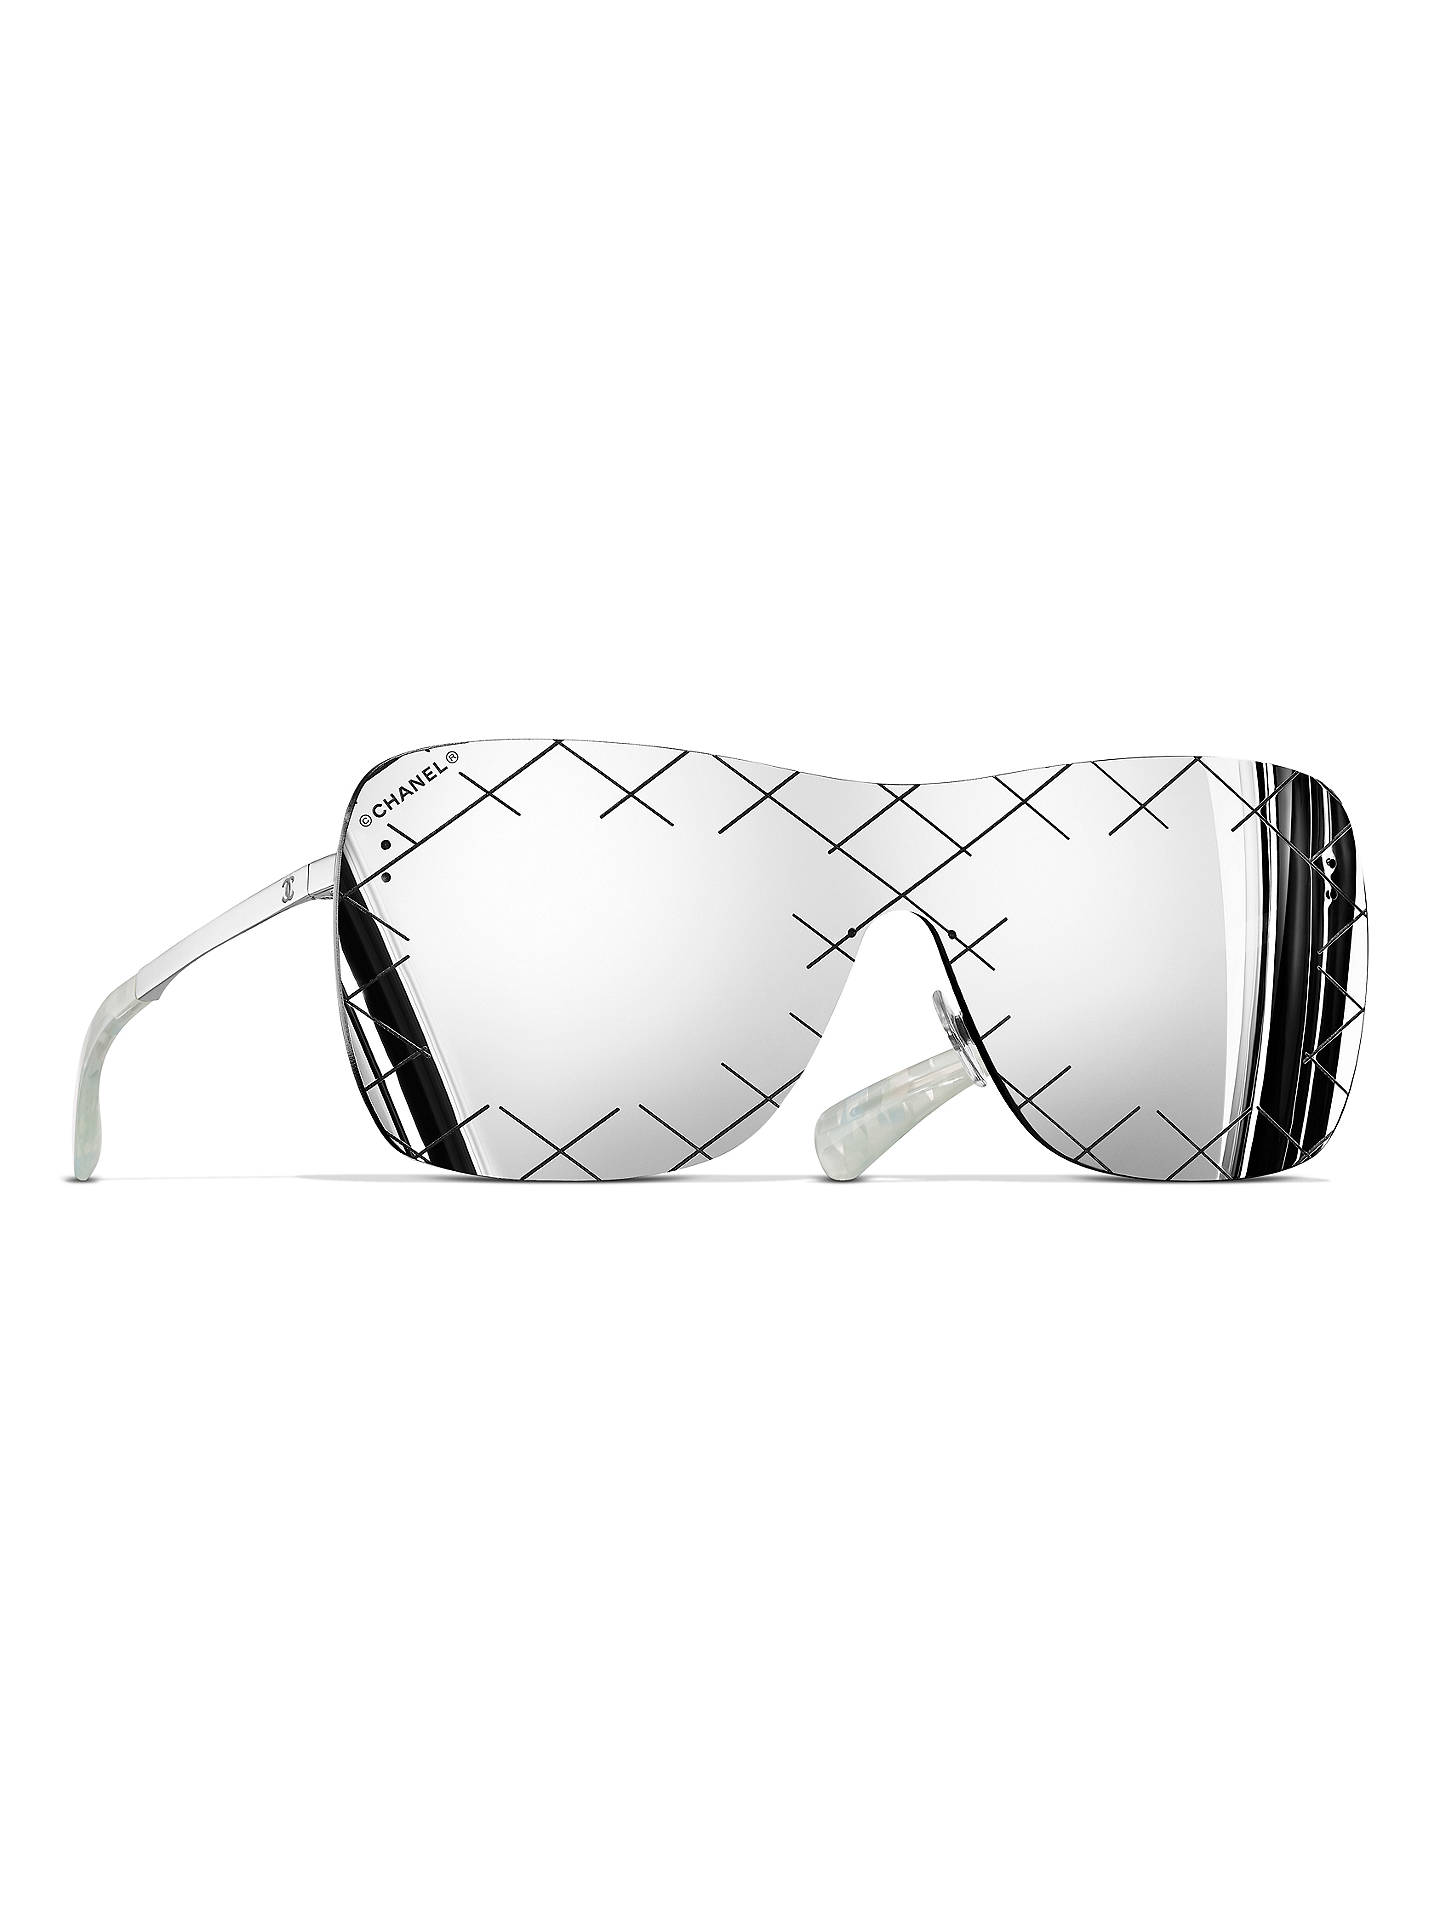 2ecccd03edc BuyCHANEL Shield Sunglasses CH4215 Silver Grey Online at johnlewis.com ...